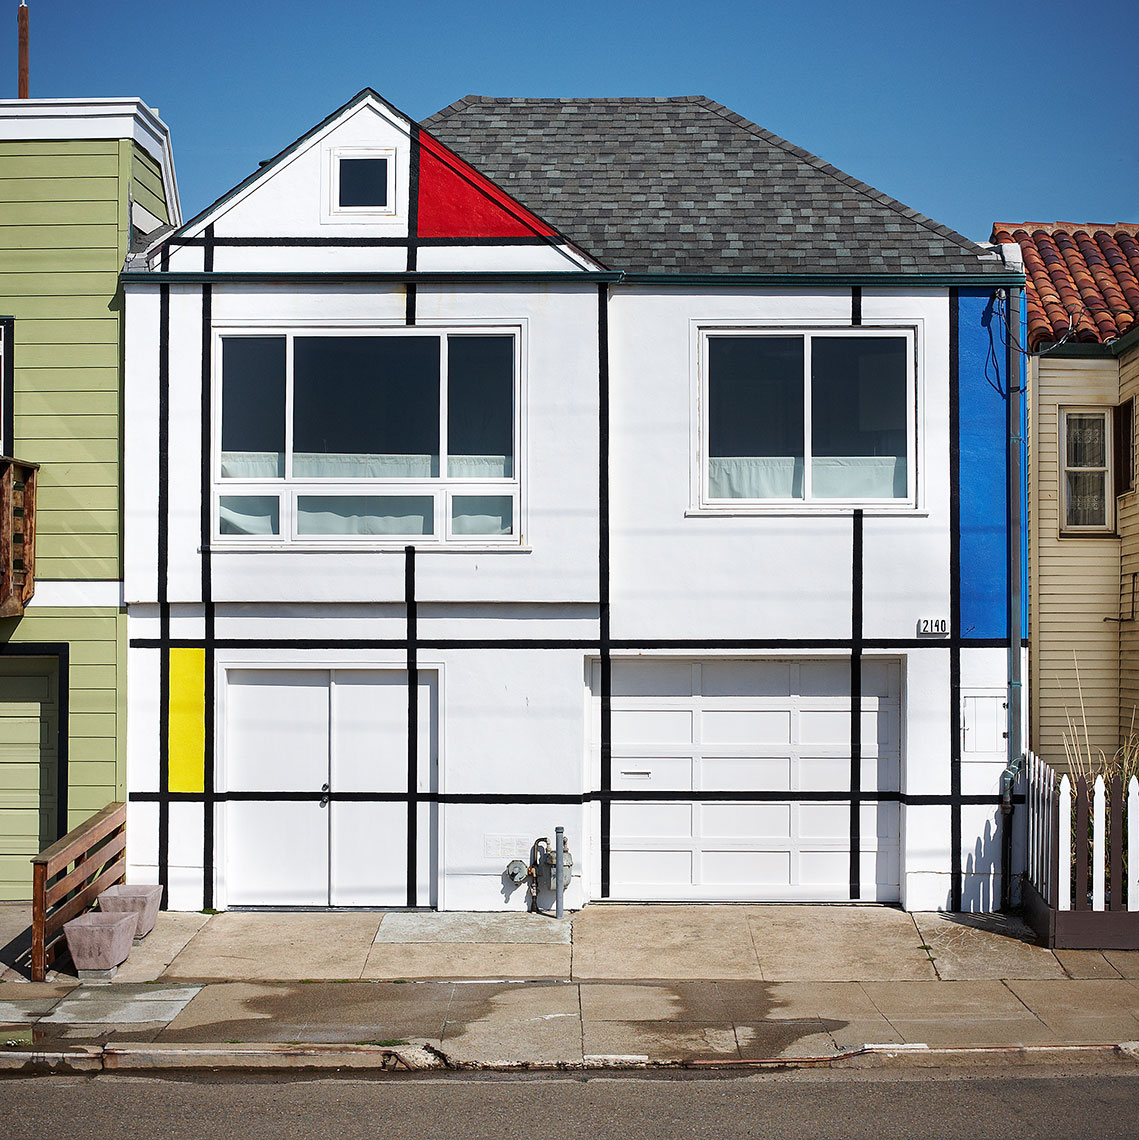 What I Seen - Mondrian House